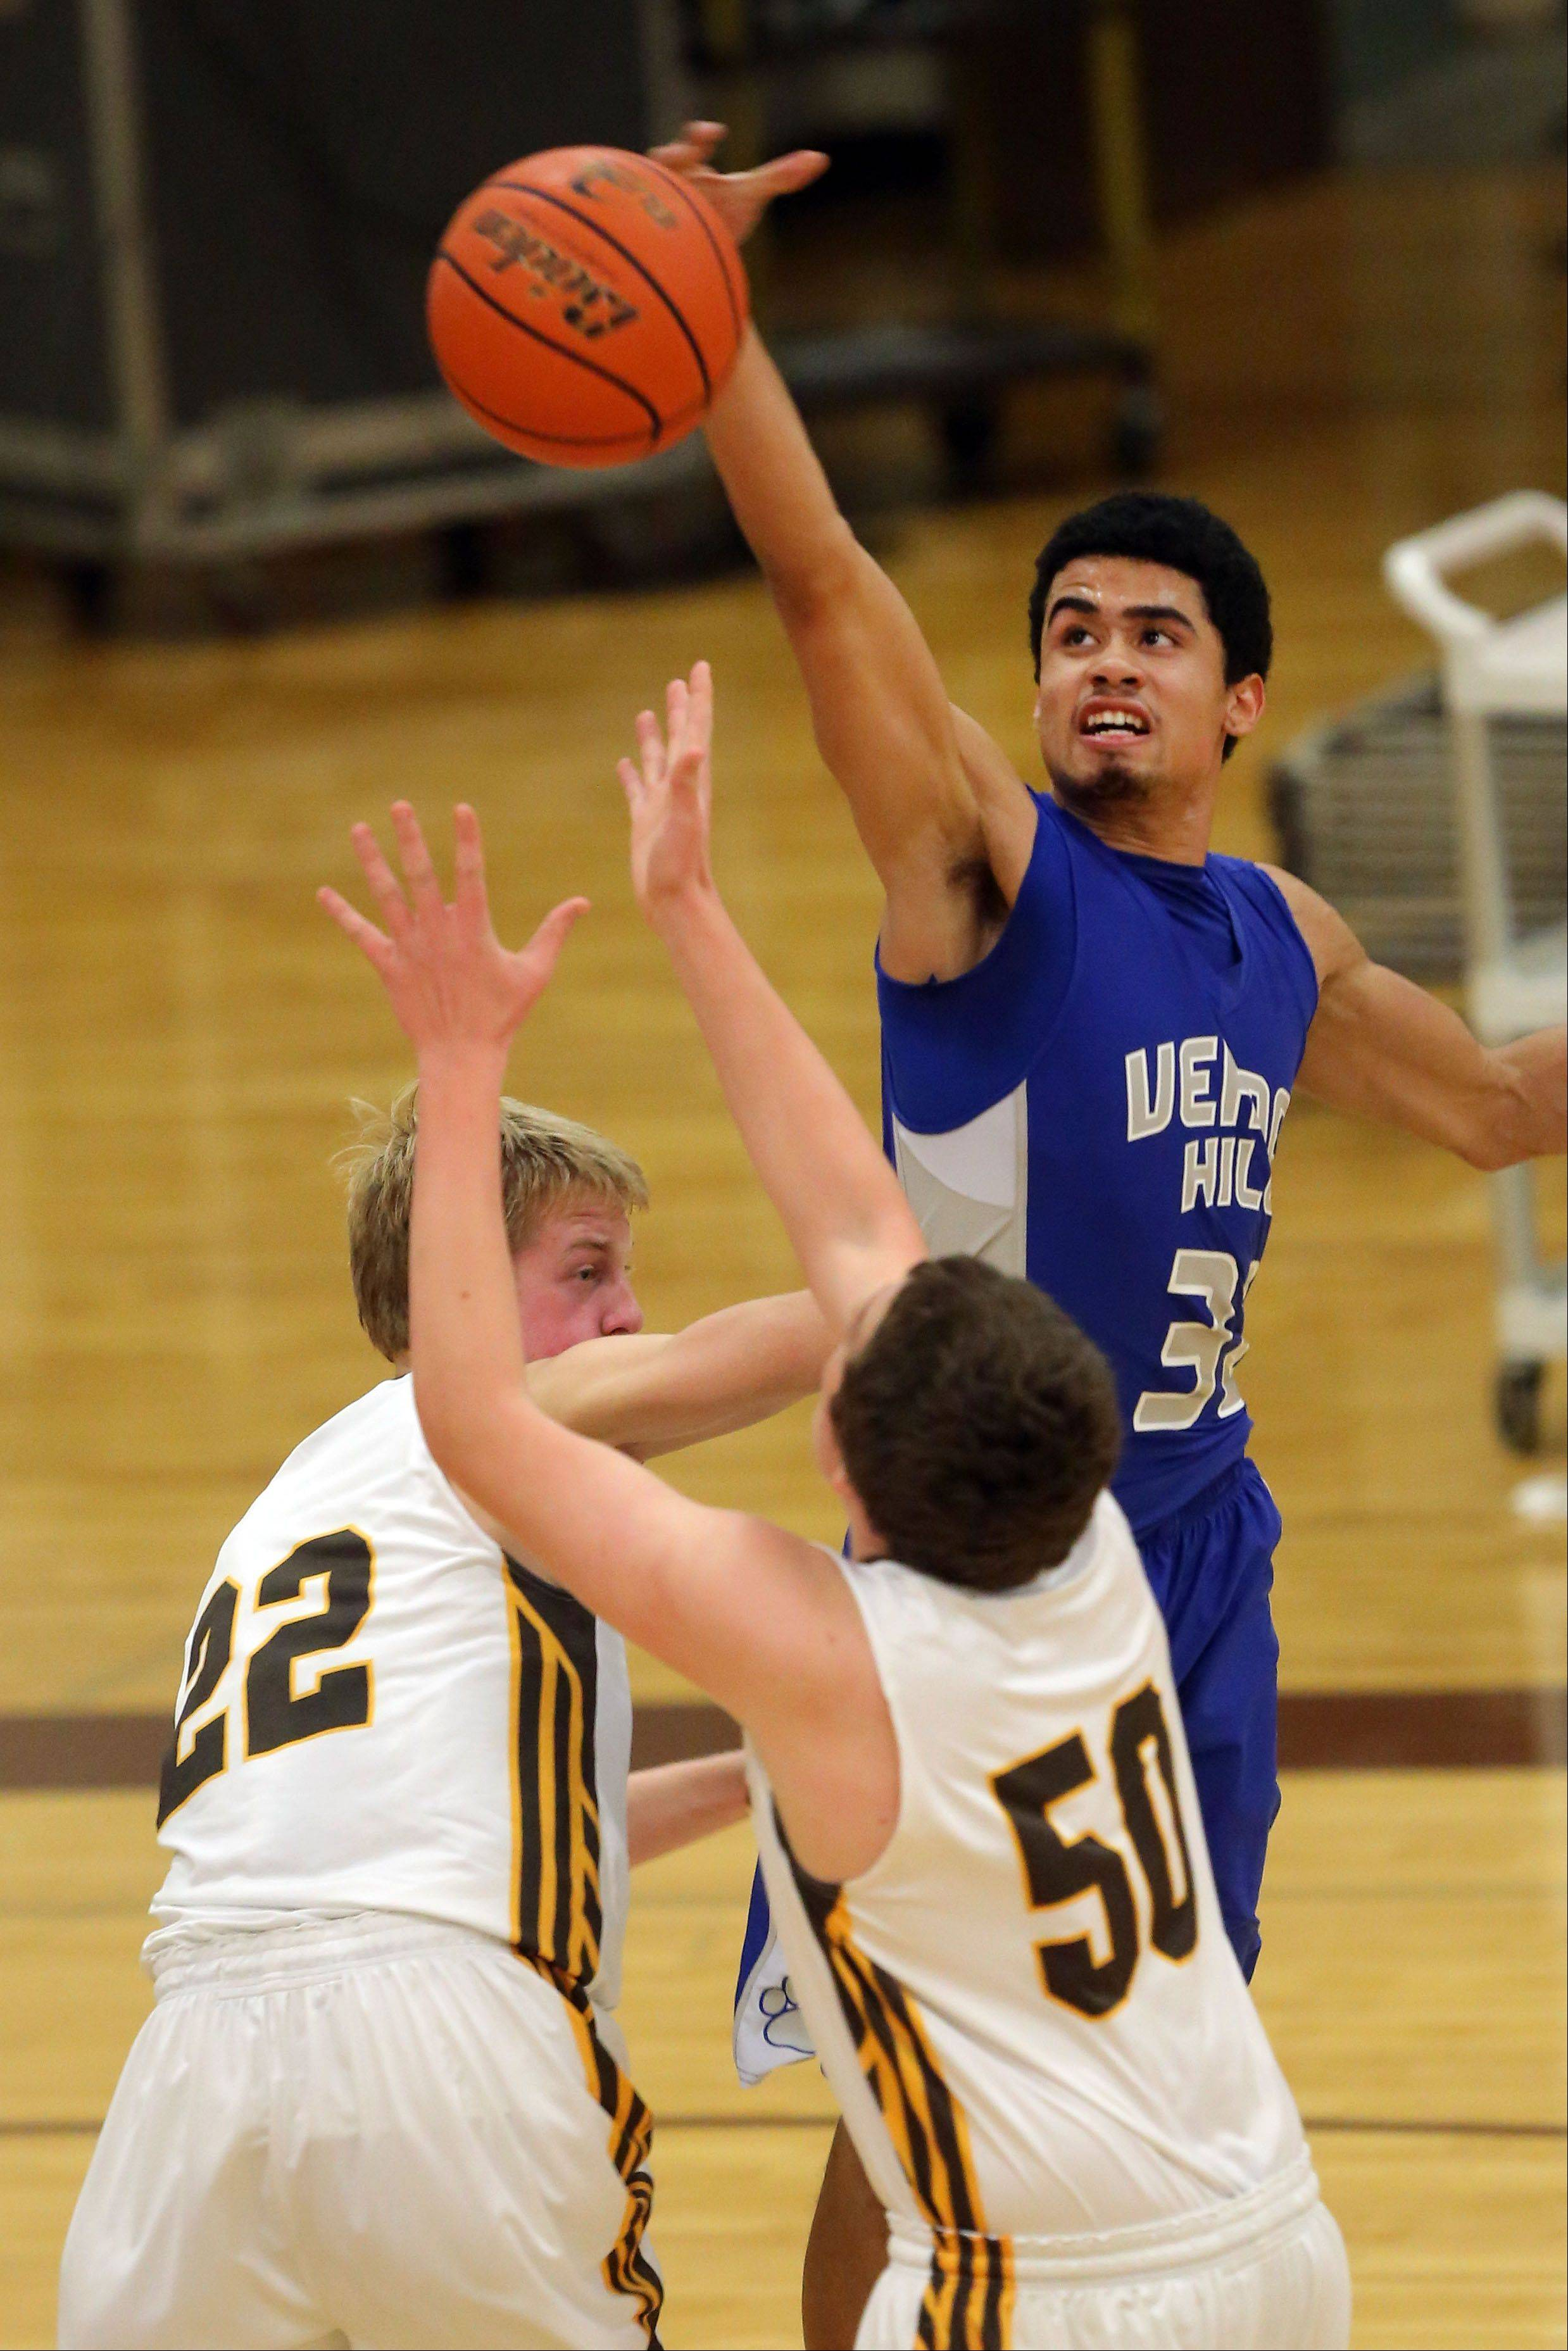 Vernon Hills' Lem Turner, right, blocks the shot of Carmel's Lee Bowen on Wednesday night at Carmel Catholic.